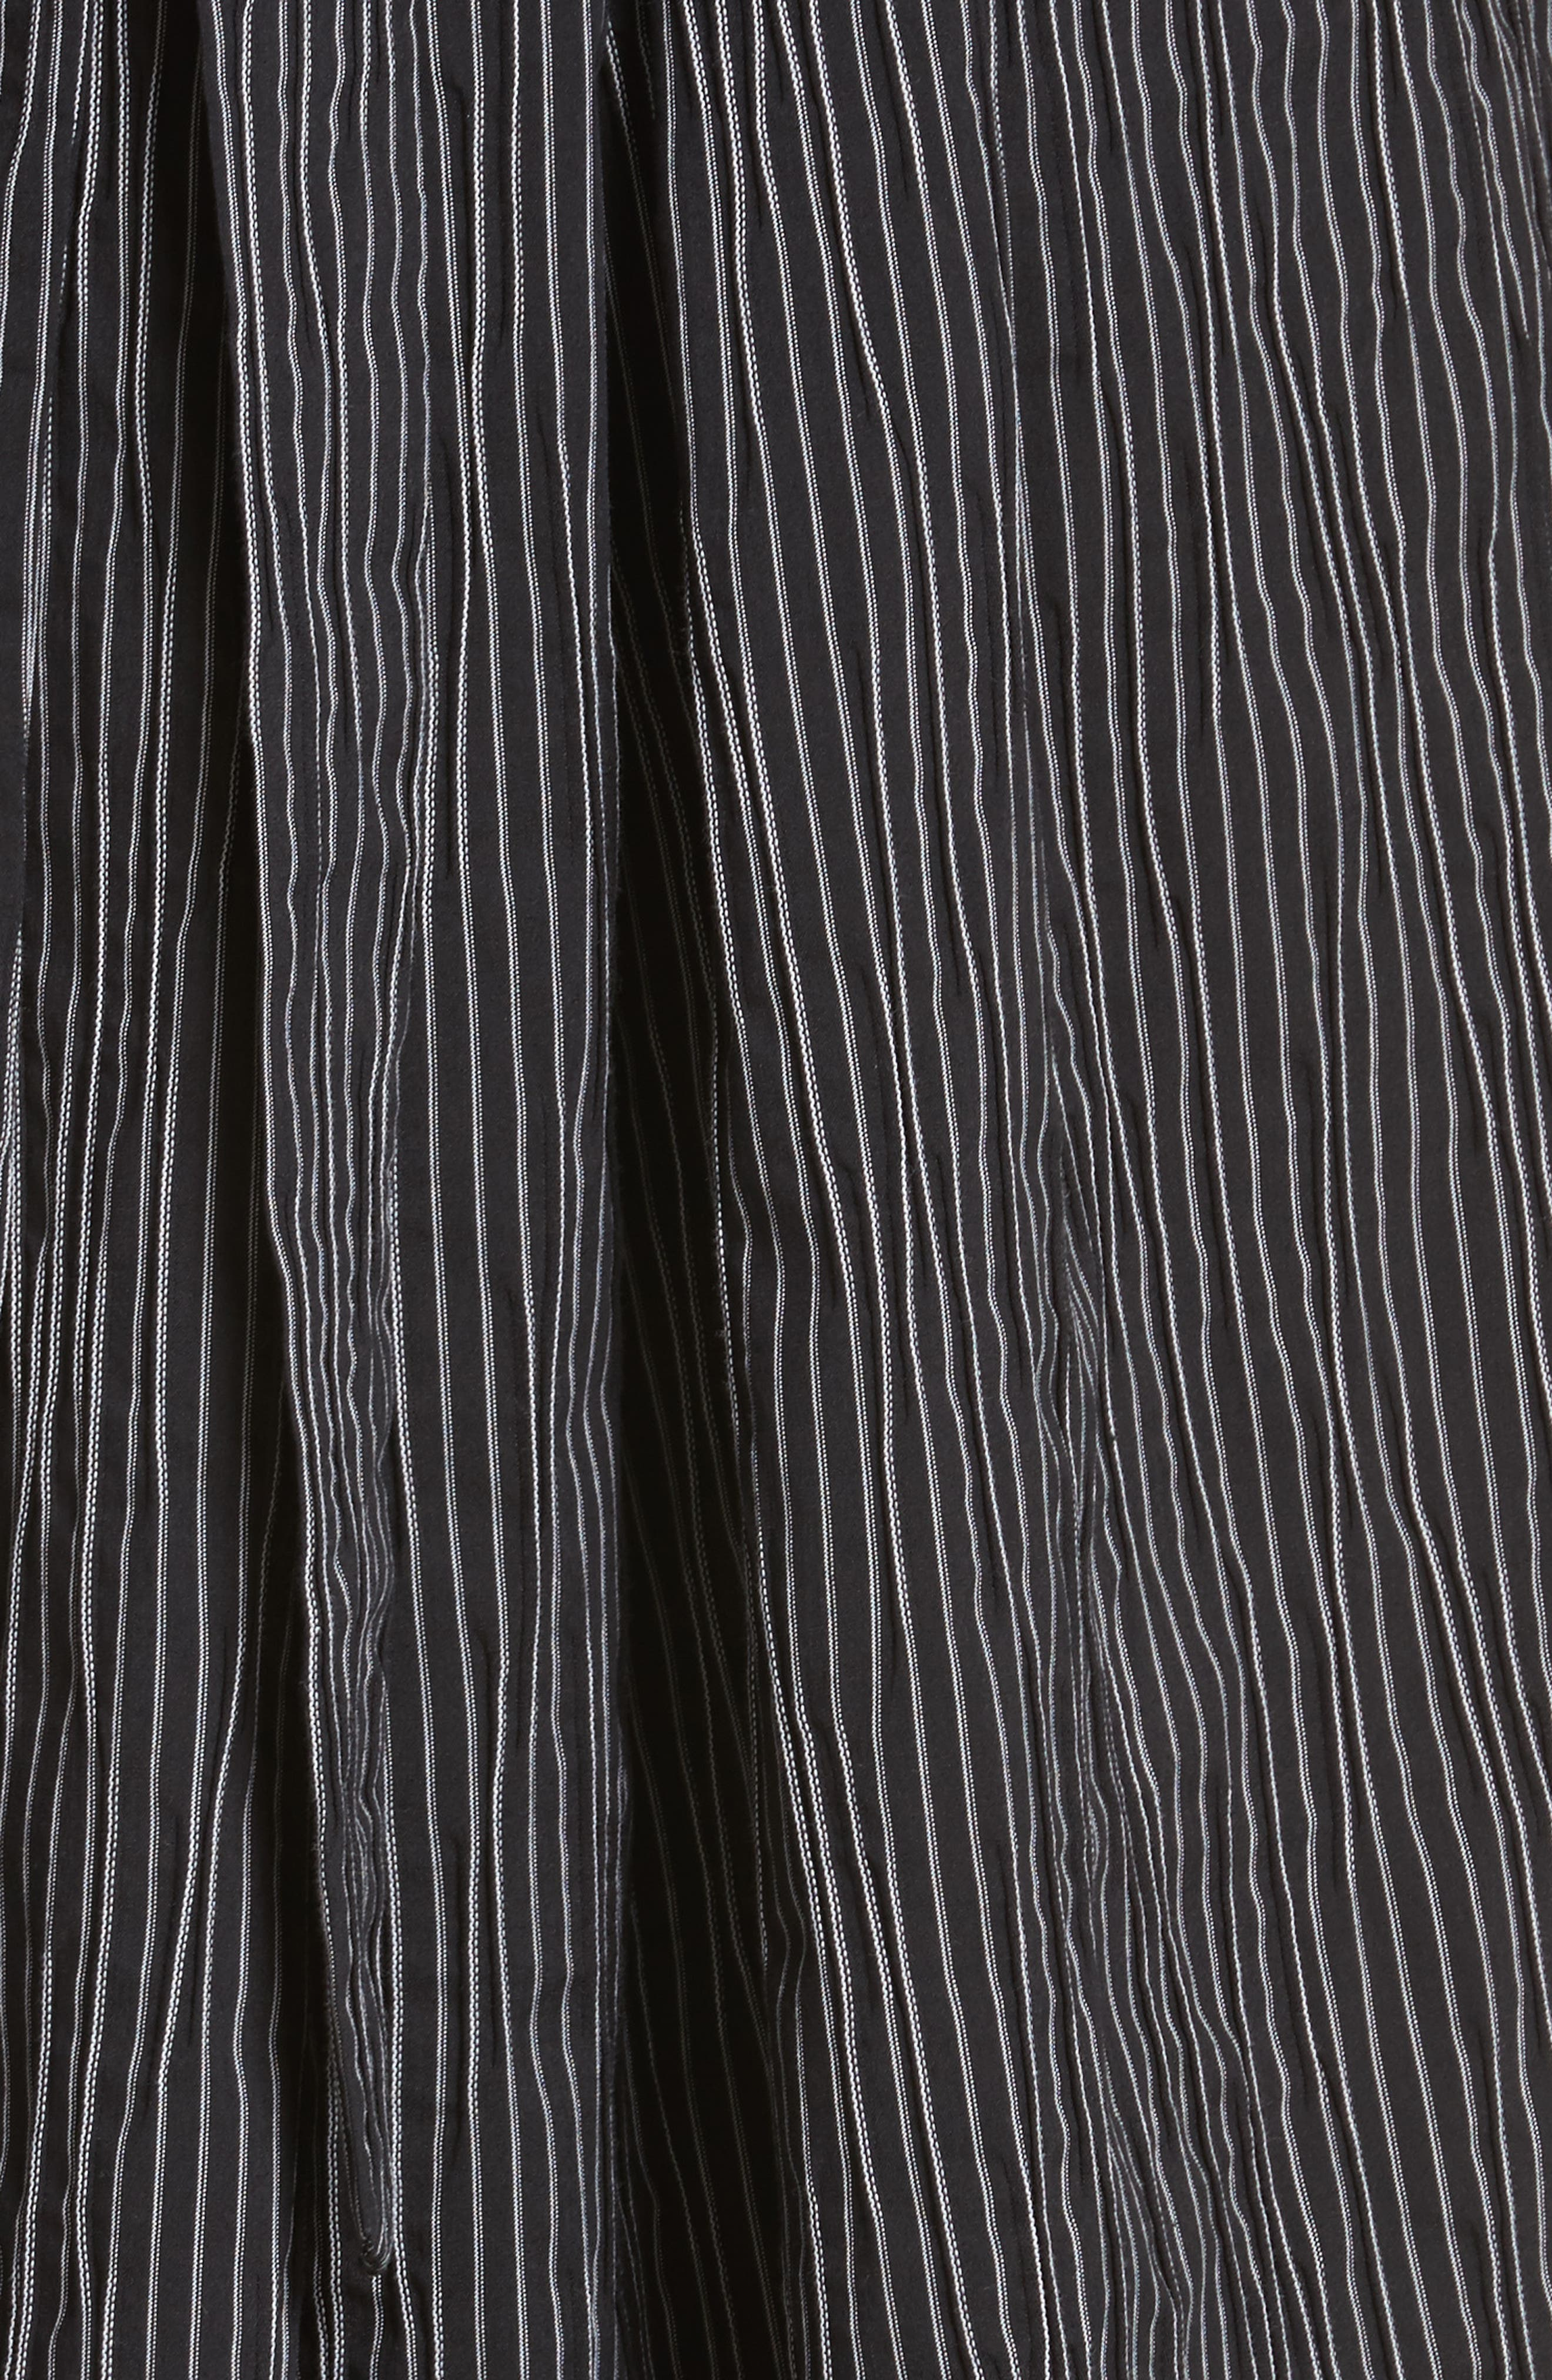 Stripe Crinkle Cotton Blend Midi Dress,                             Alternate thumbnail 5, color,                             Black/ White Stripe